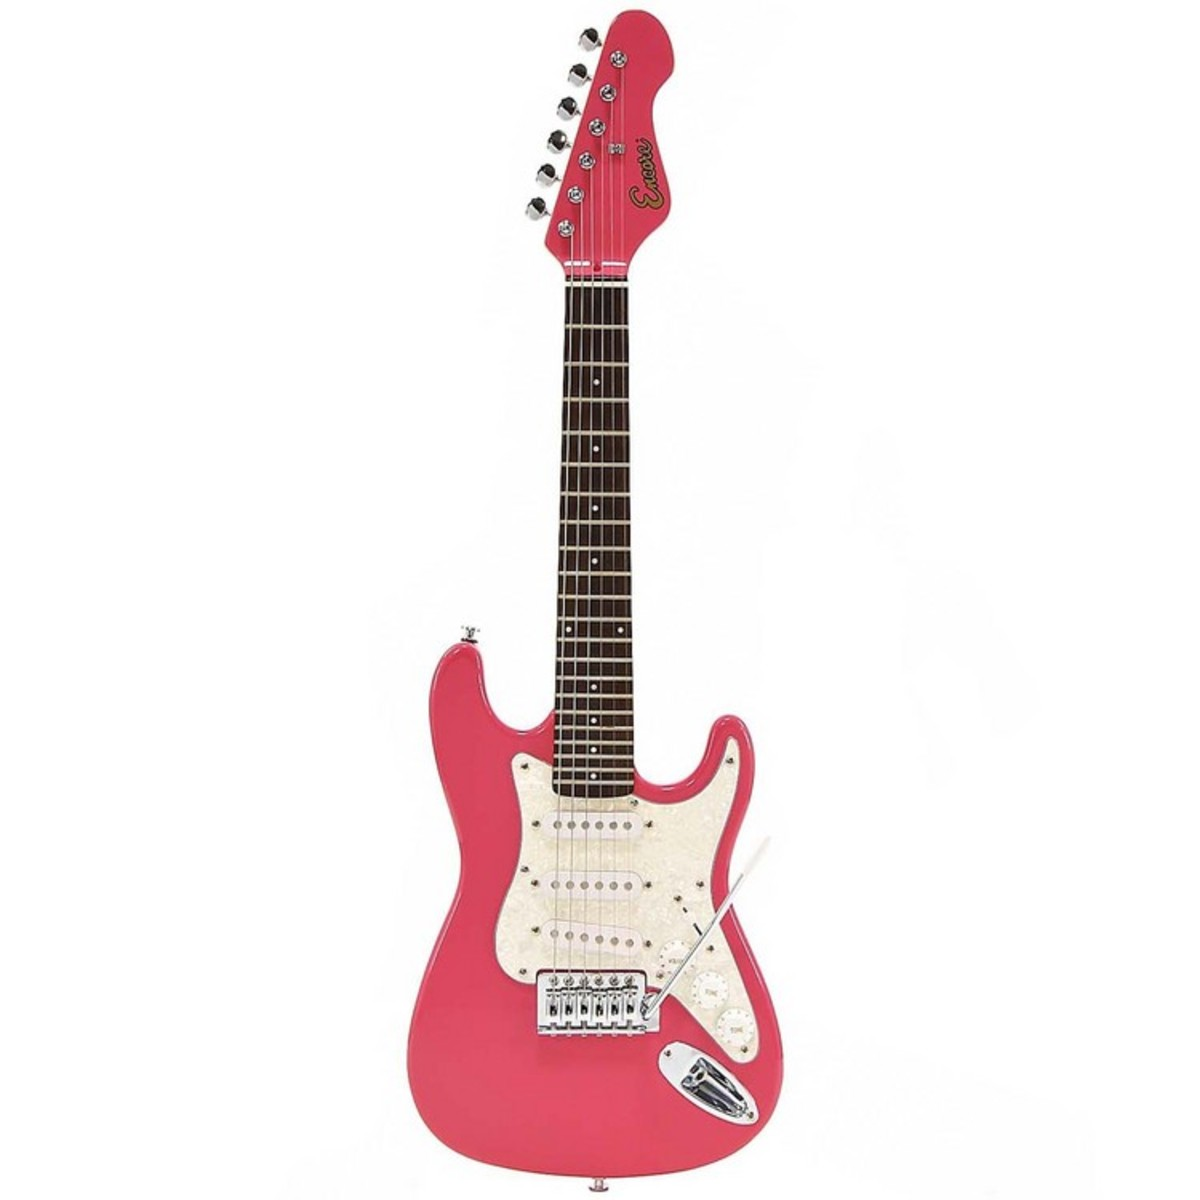 discontinued encore kc375 3 4 size electric guitar pink at gear4music. Black Bedroom Furniture Sets. Home Design Ideas